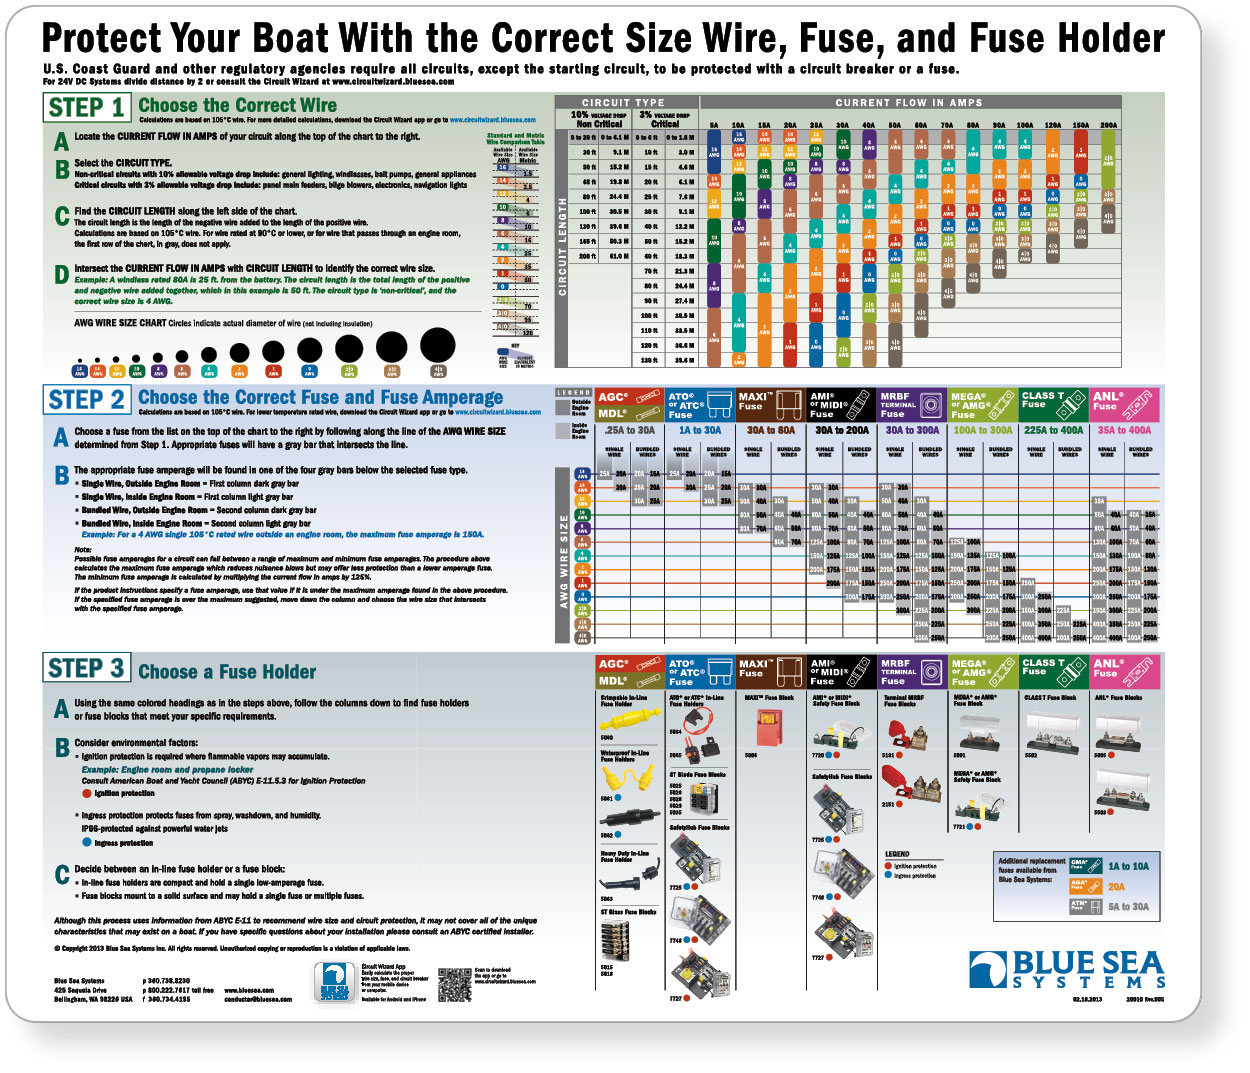 Dc fuse sizing complete wiring diagrams wire fuse and fuse holder selection chart blue sea systems rh bluesea com dc fuse sizing chart dc circuit fuse sizing greentooth Gallery